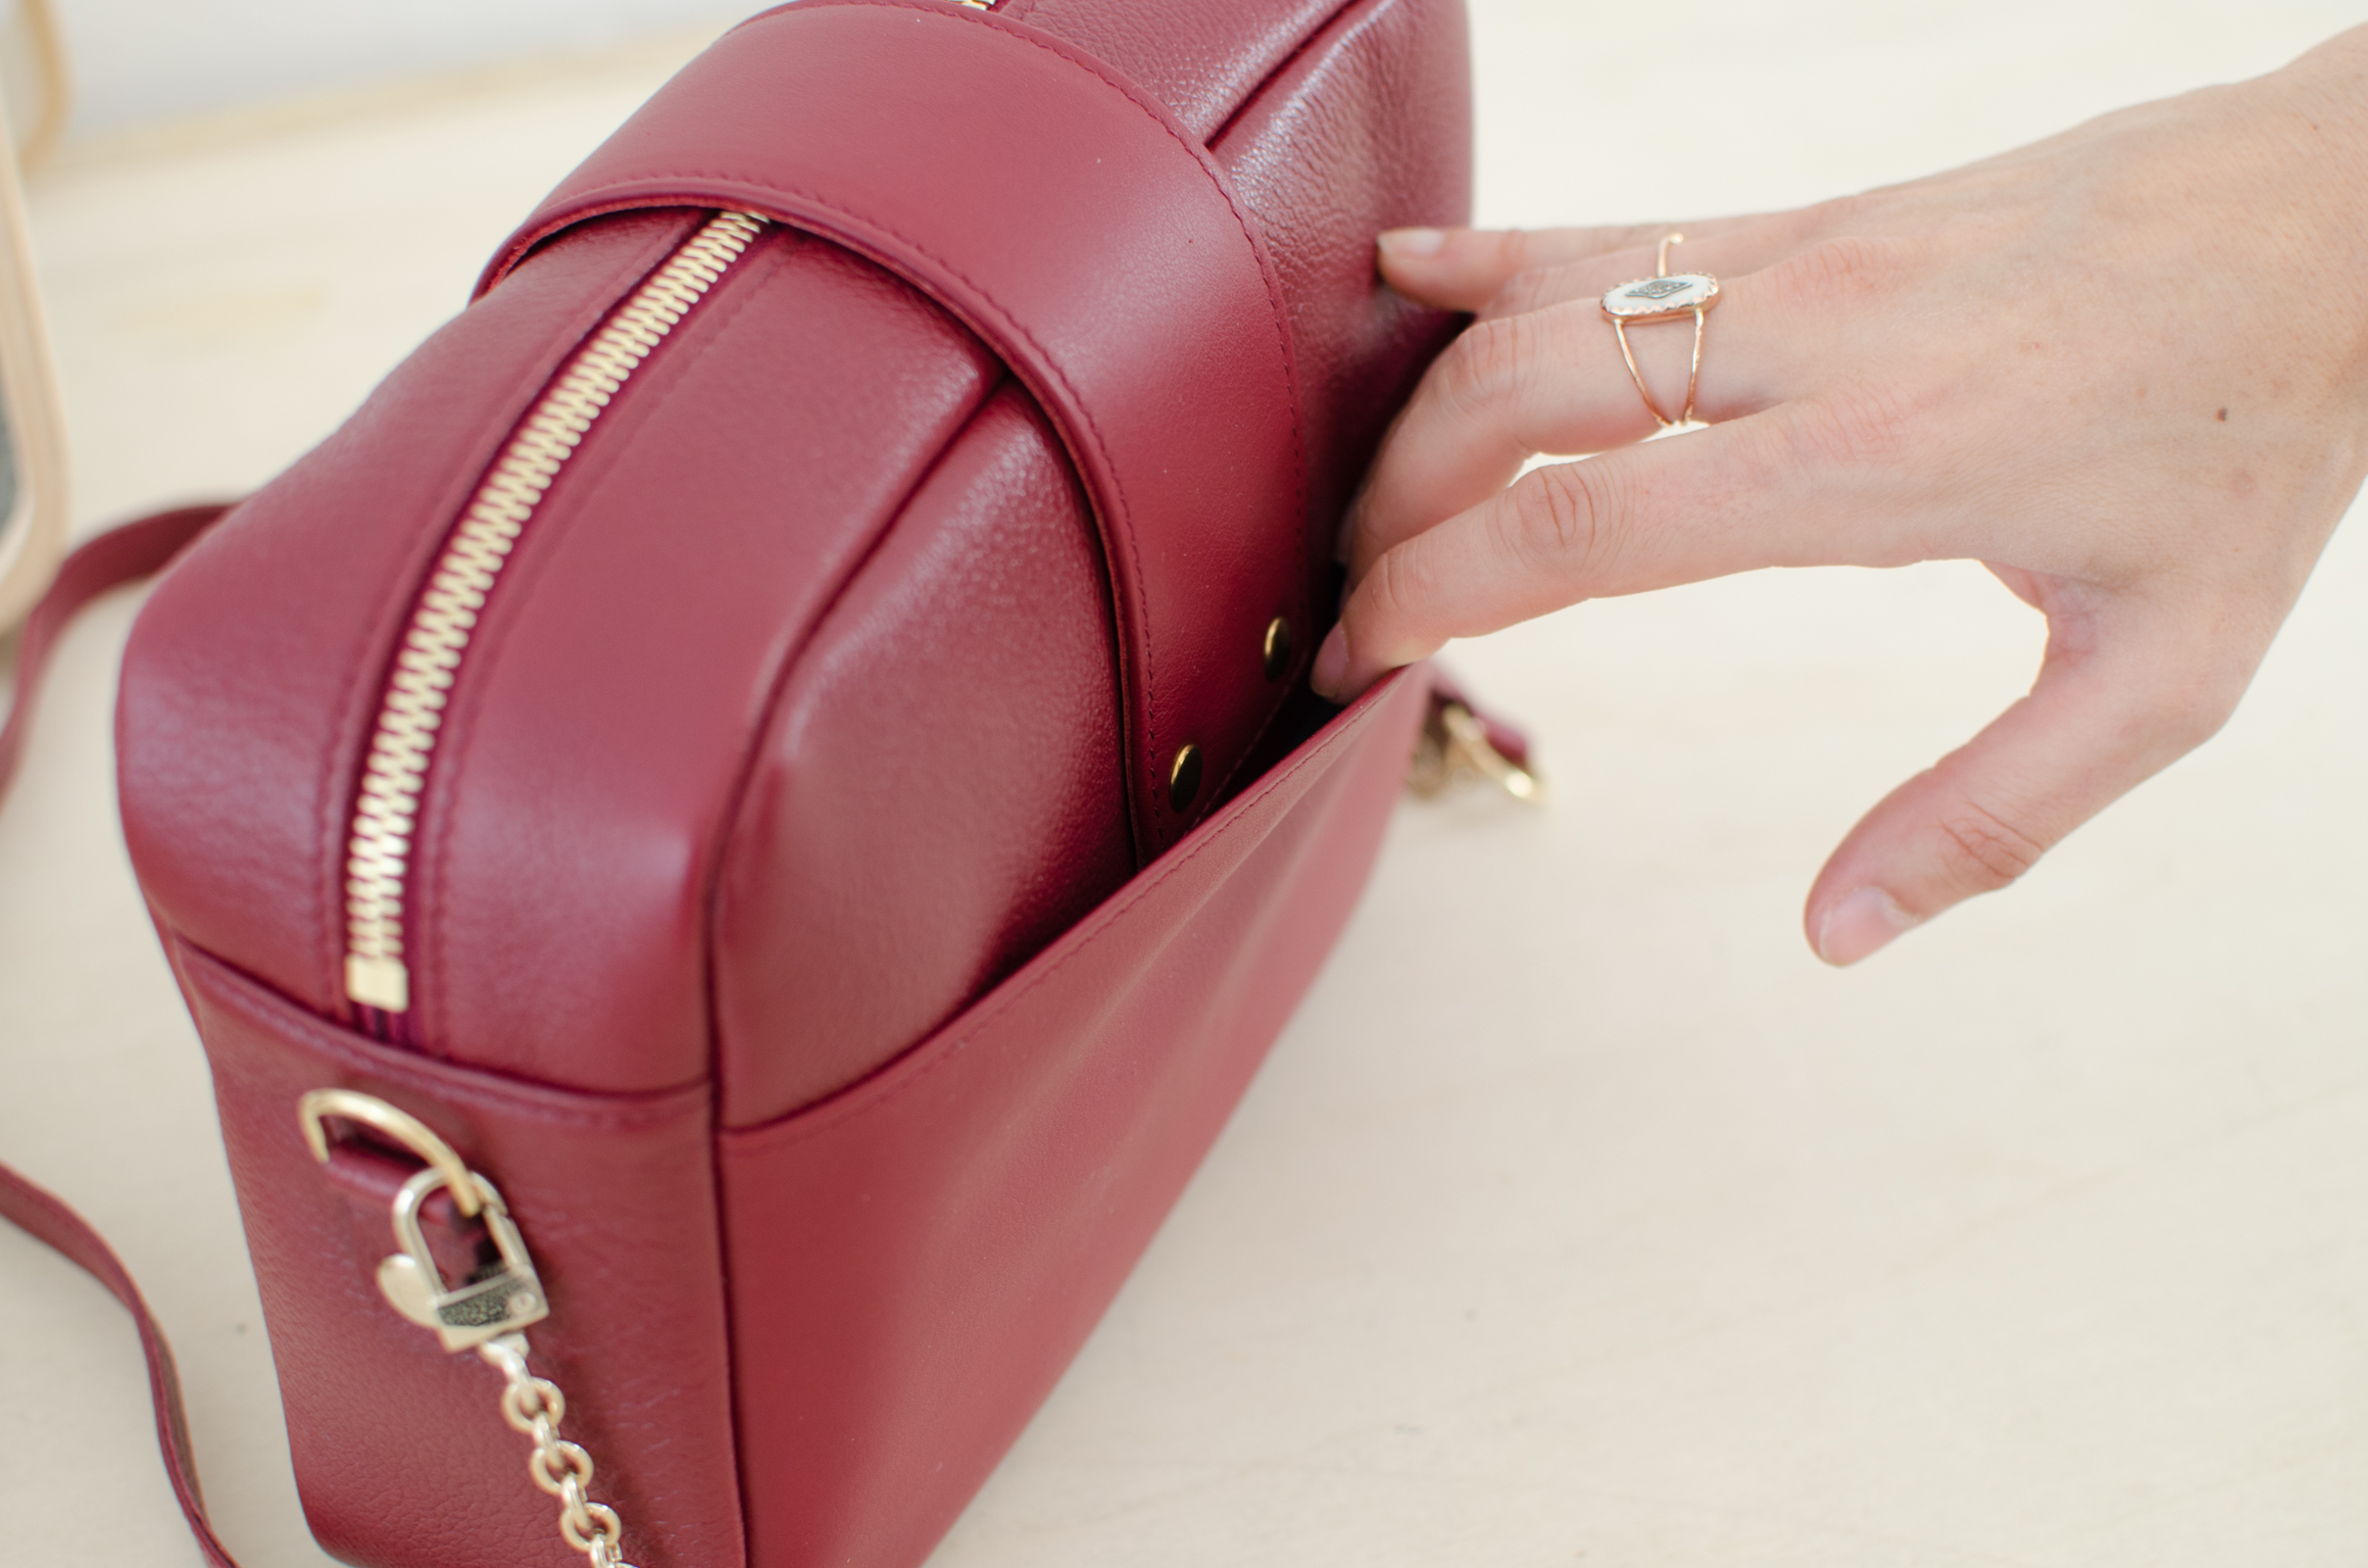 sac atelier amand divin cramberry 3